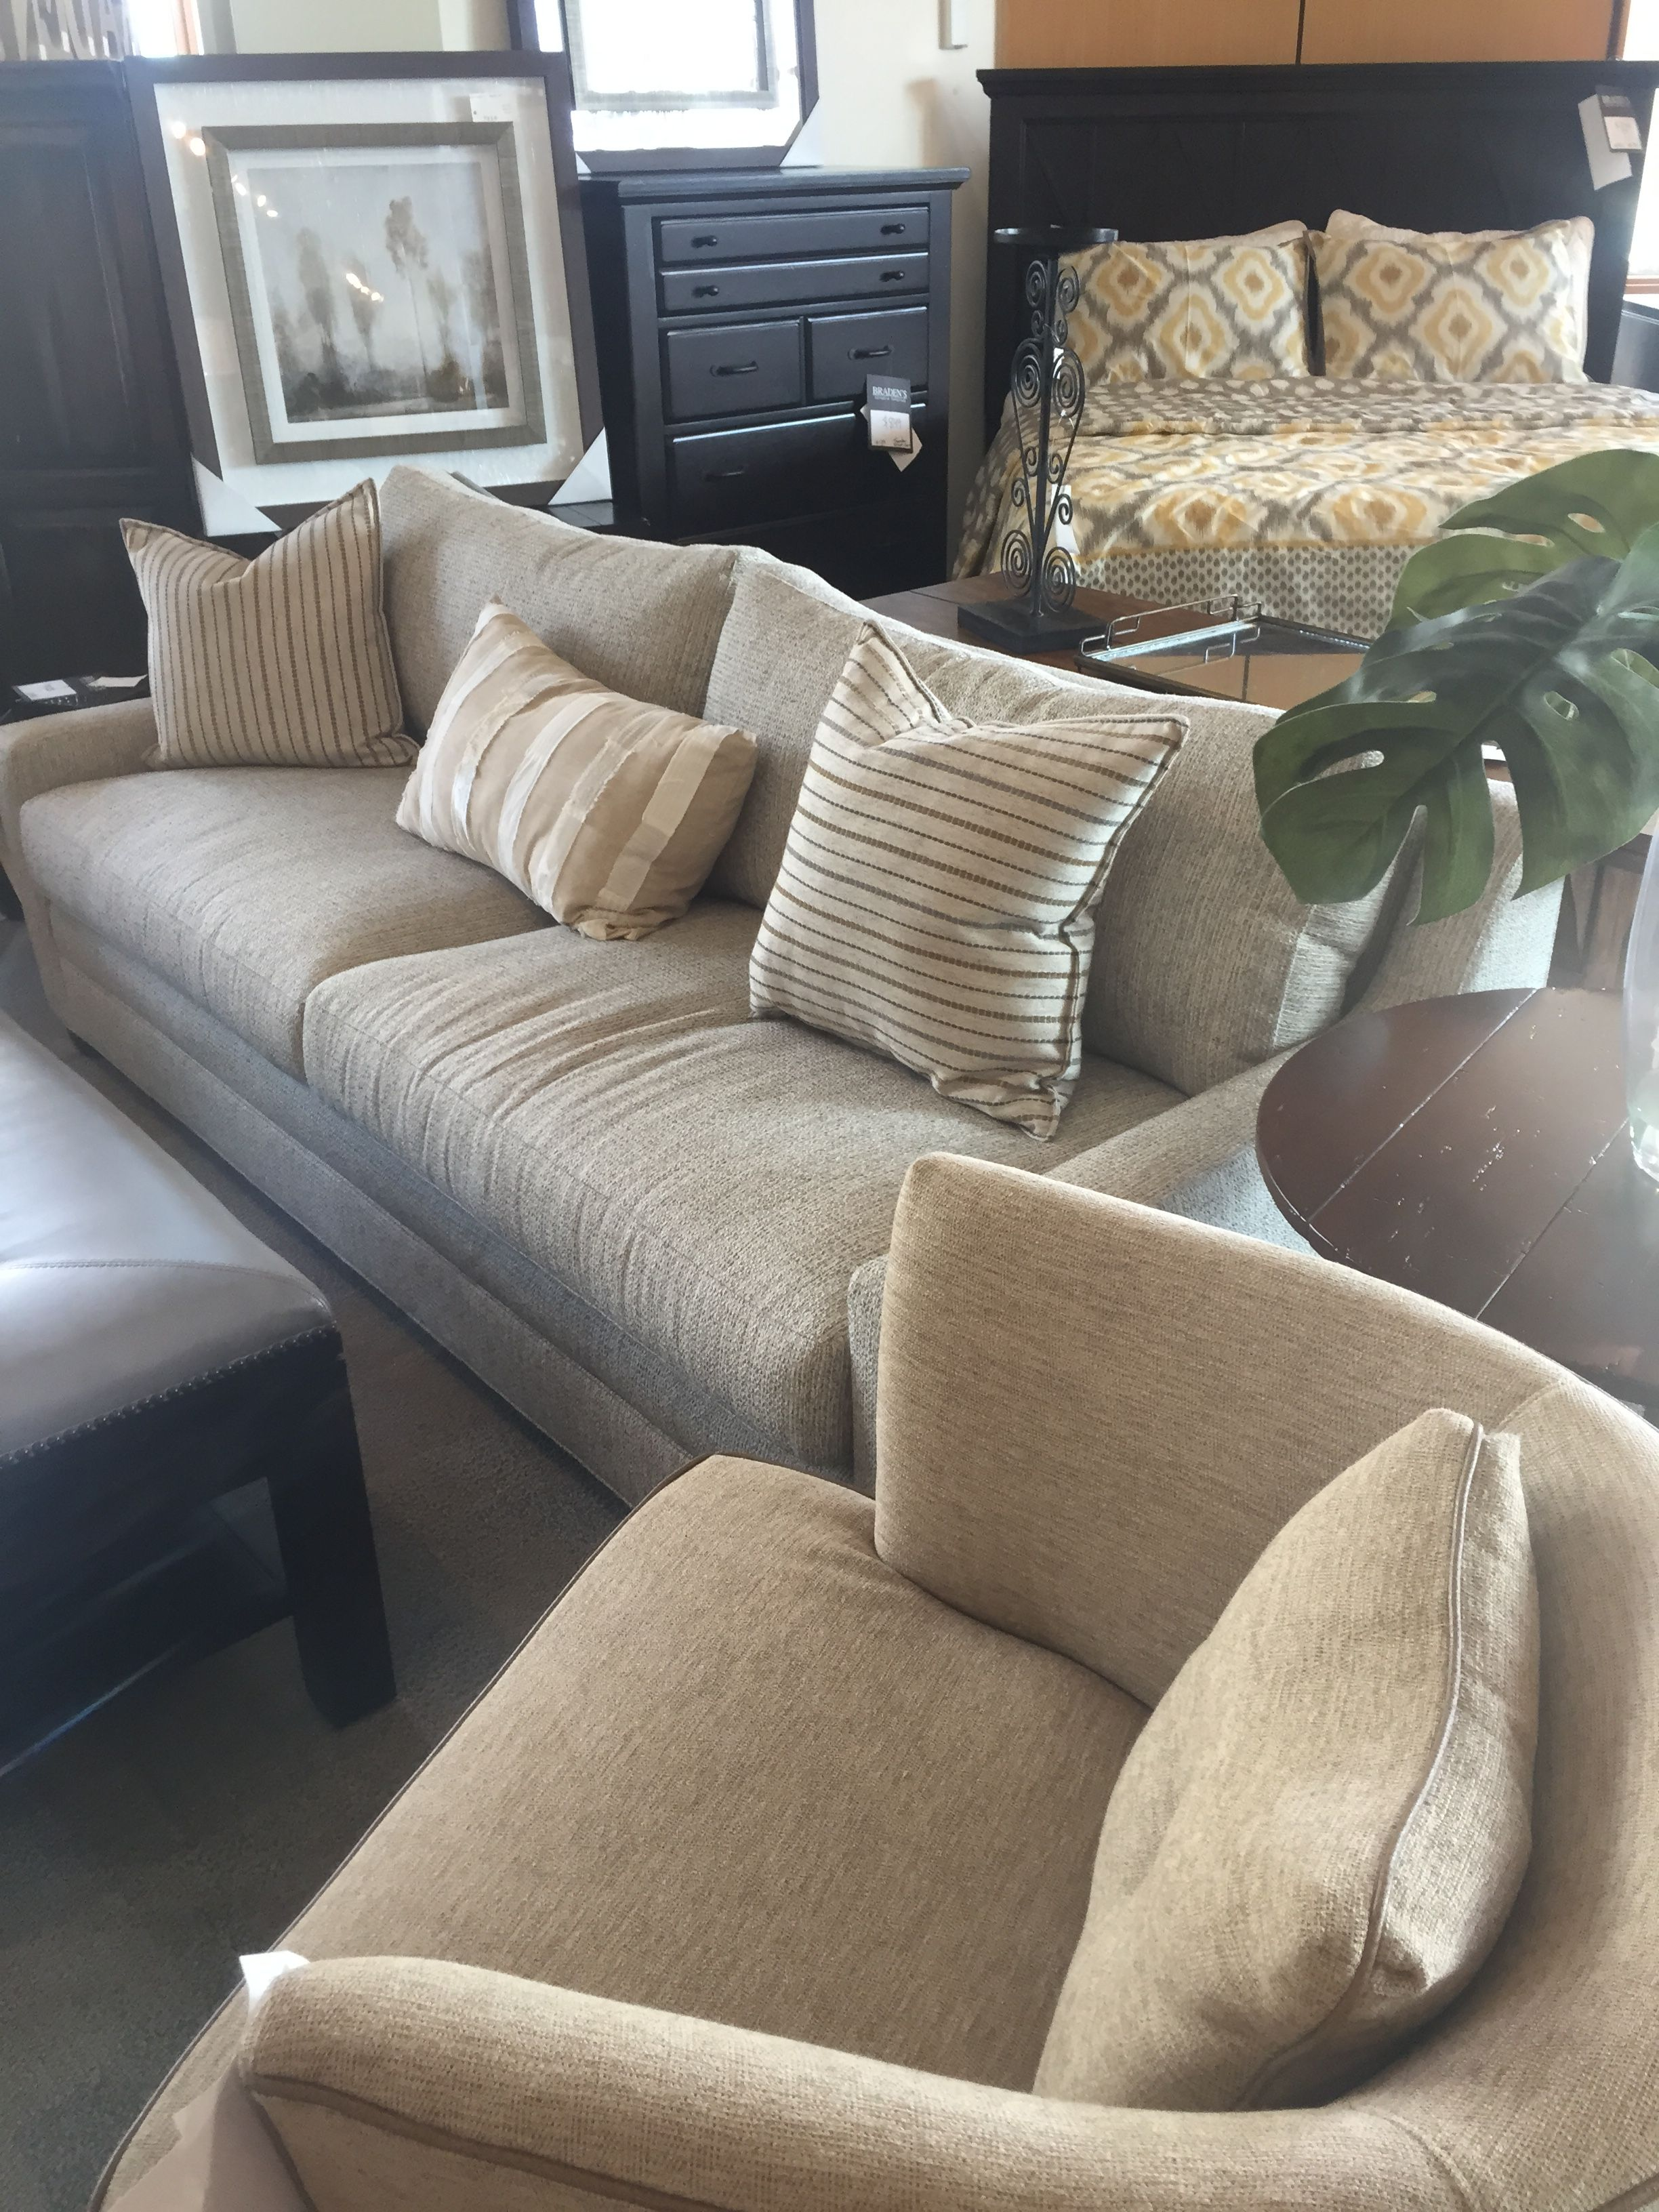 Furniture In Knoxville Braden S Lifestyles Furniture Home